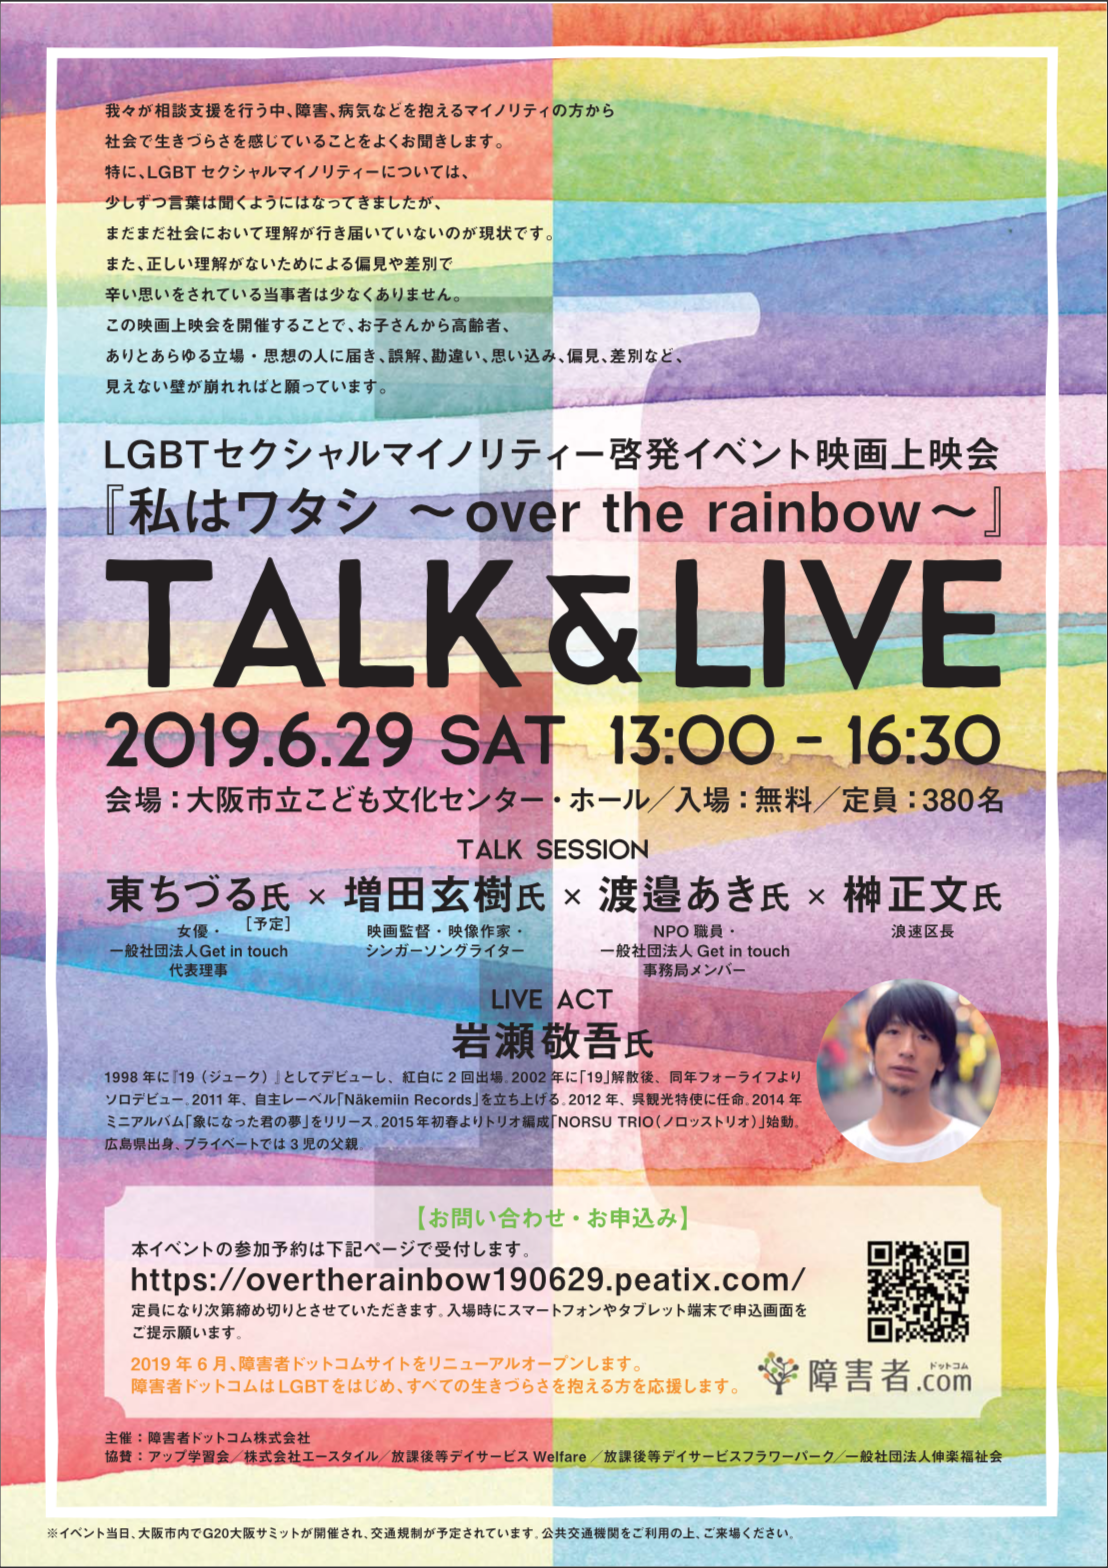 190629talklive_flyer_1